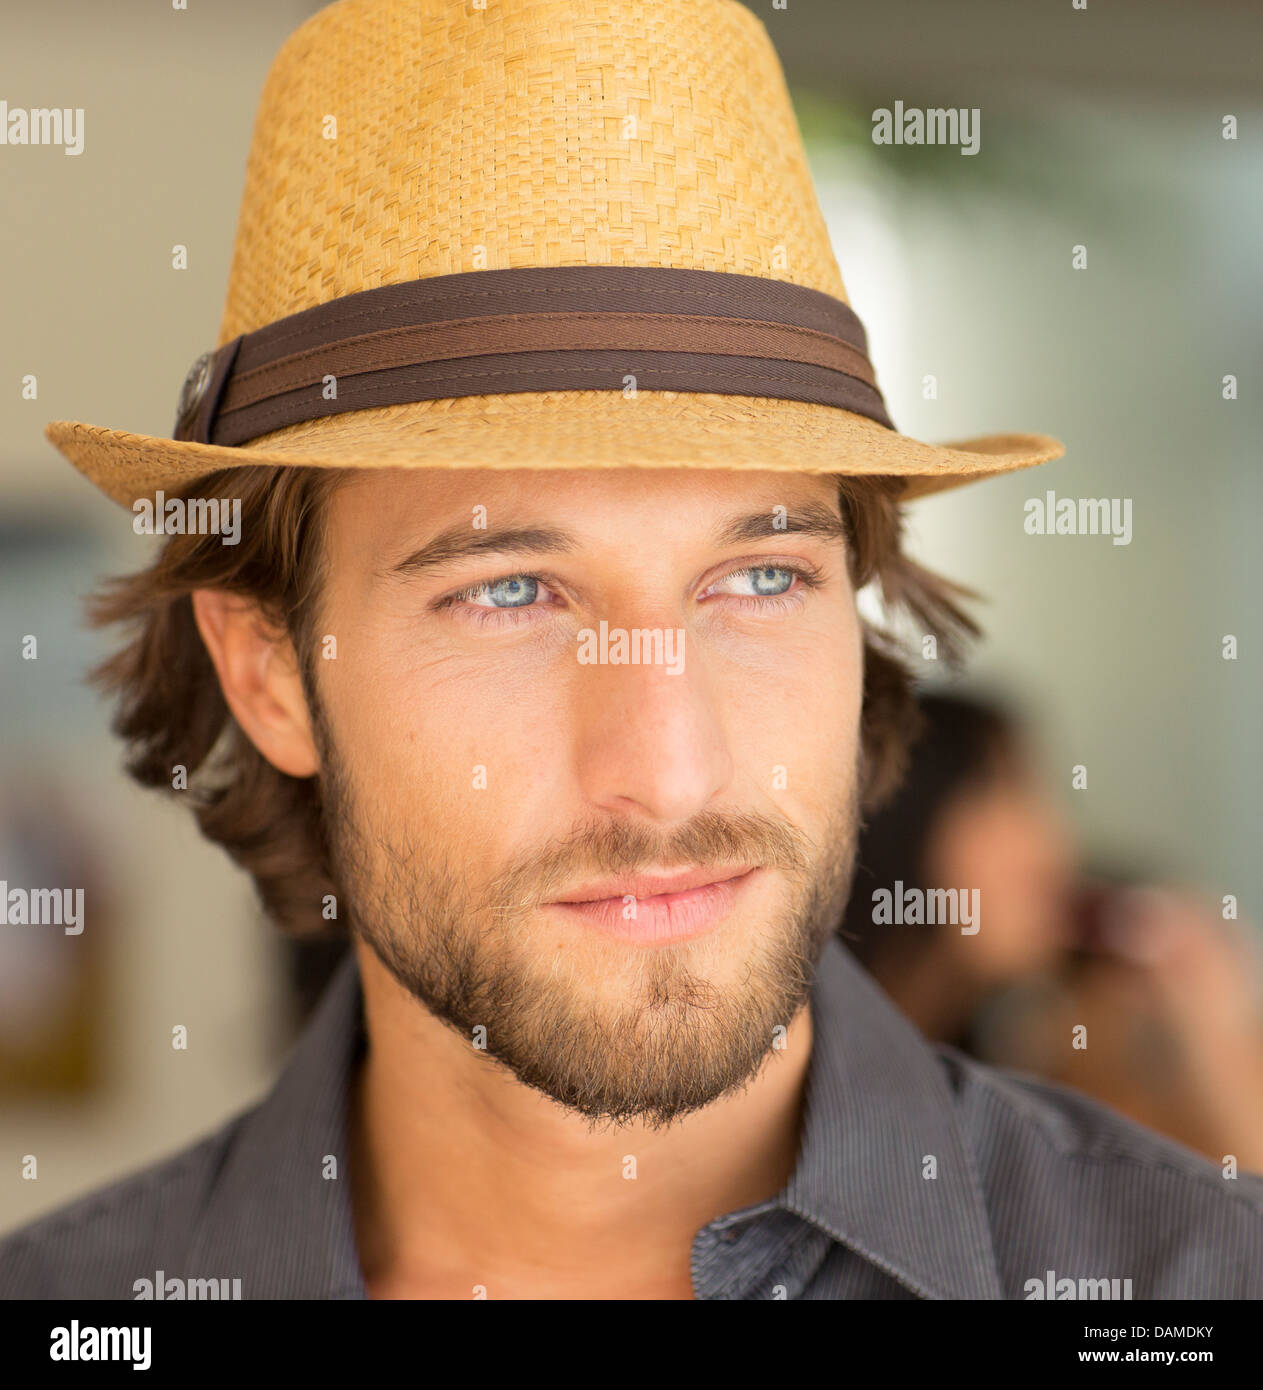 Smiling man wearing straw hat Banque D'Images